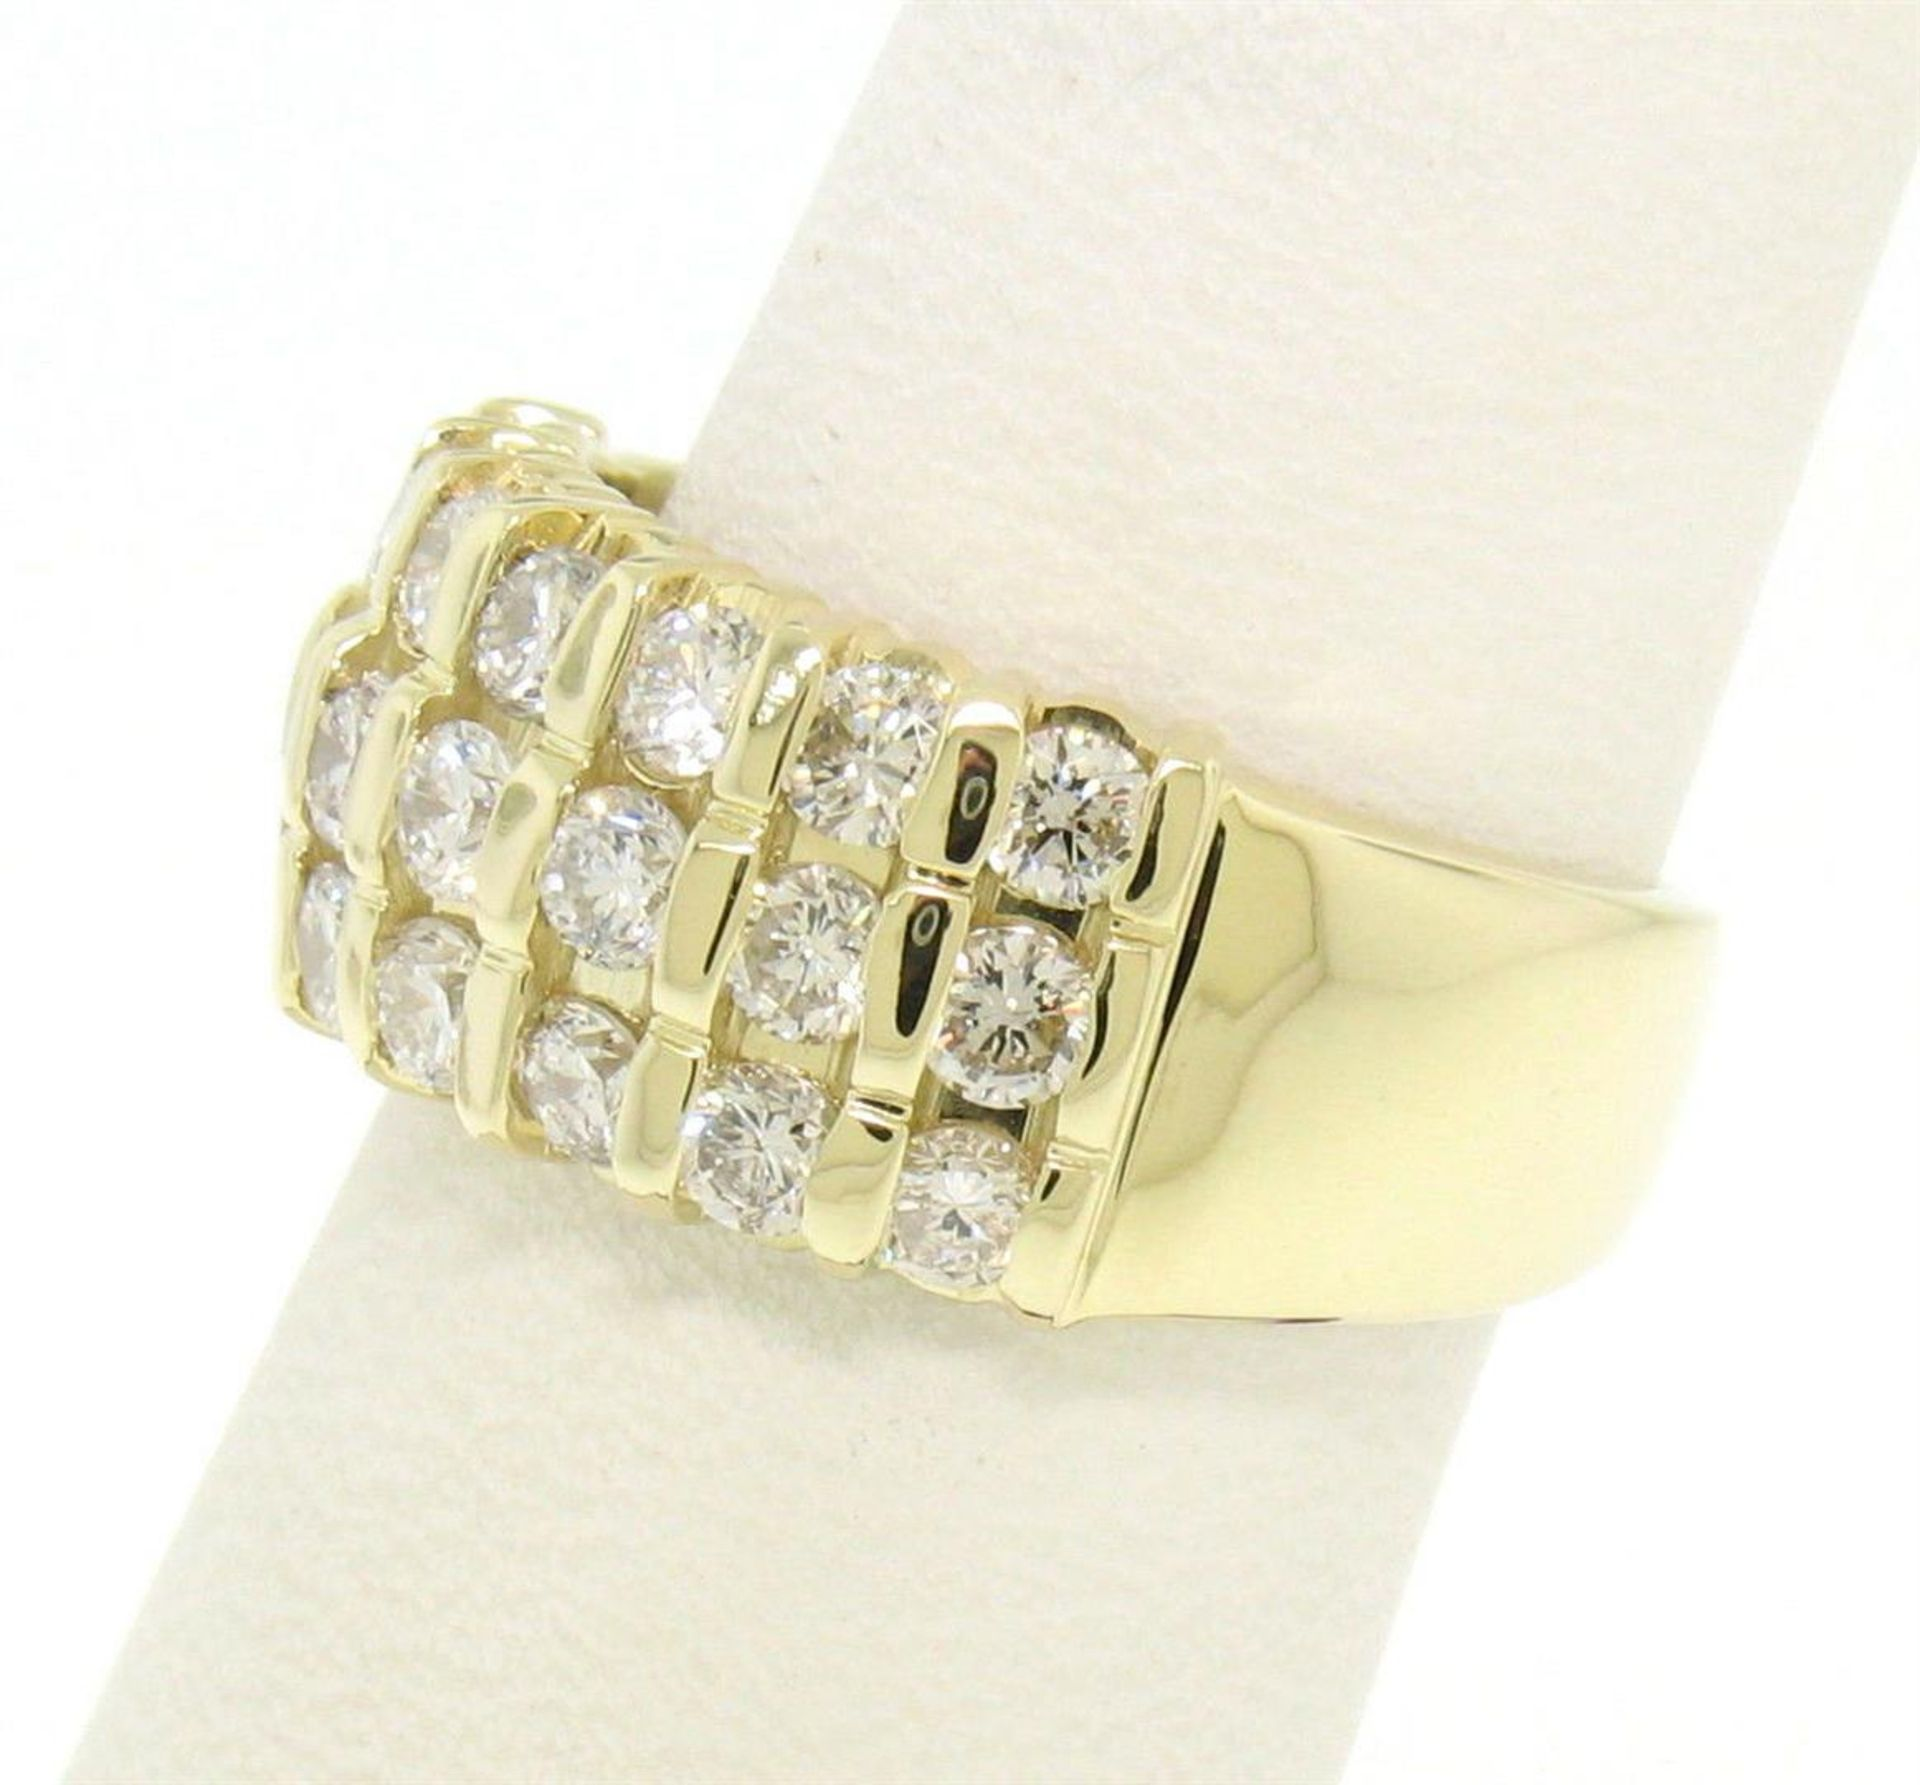 14kt Yellow Gold 1.48 ctw Bar Set Round Diamond Wide Band Ring - Image 4 of 7